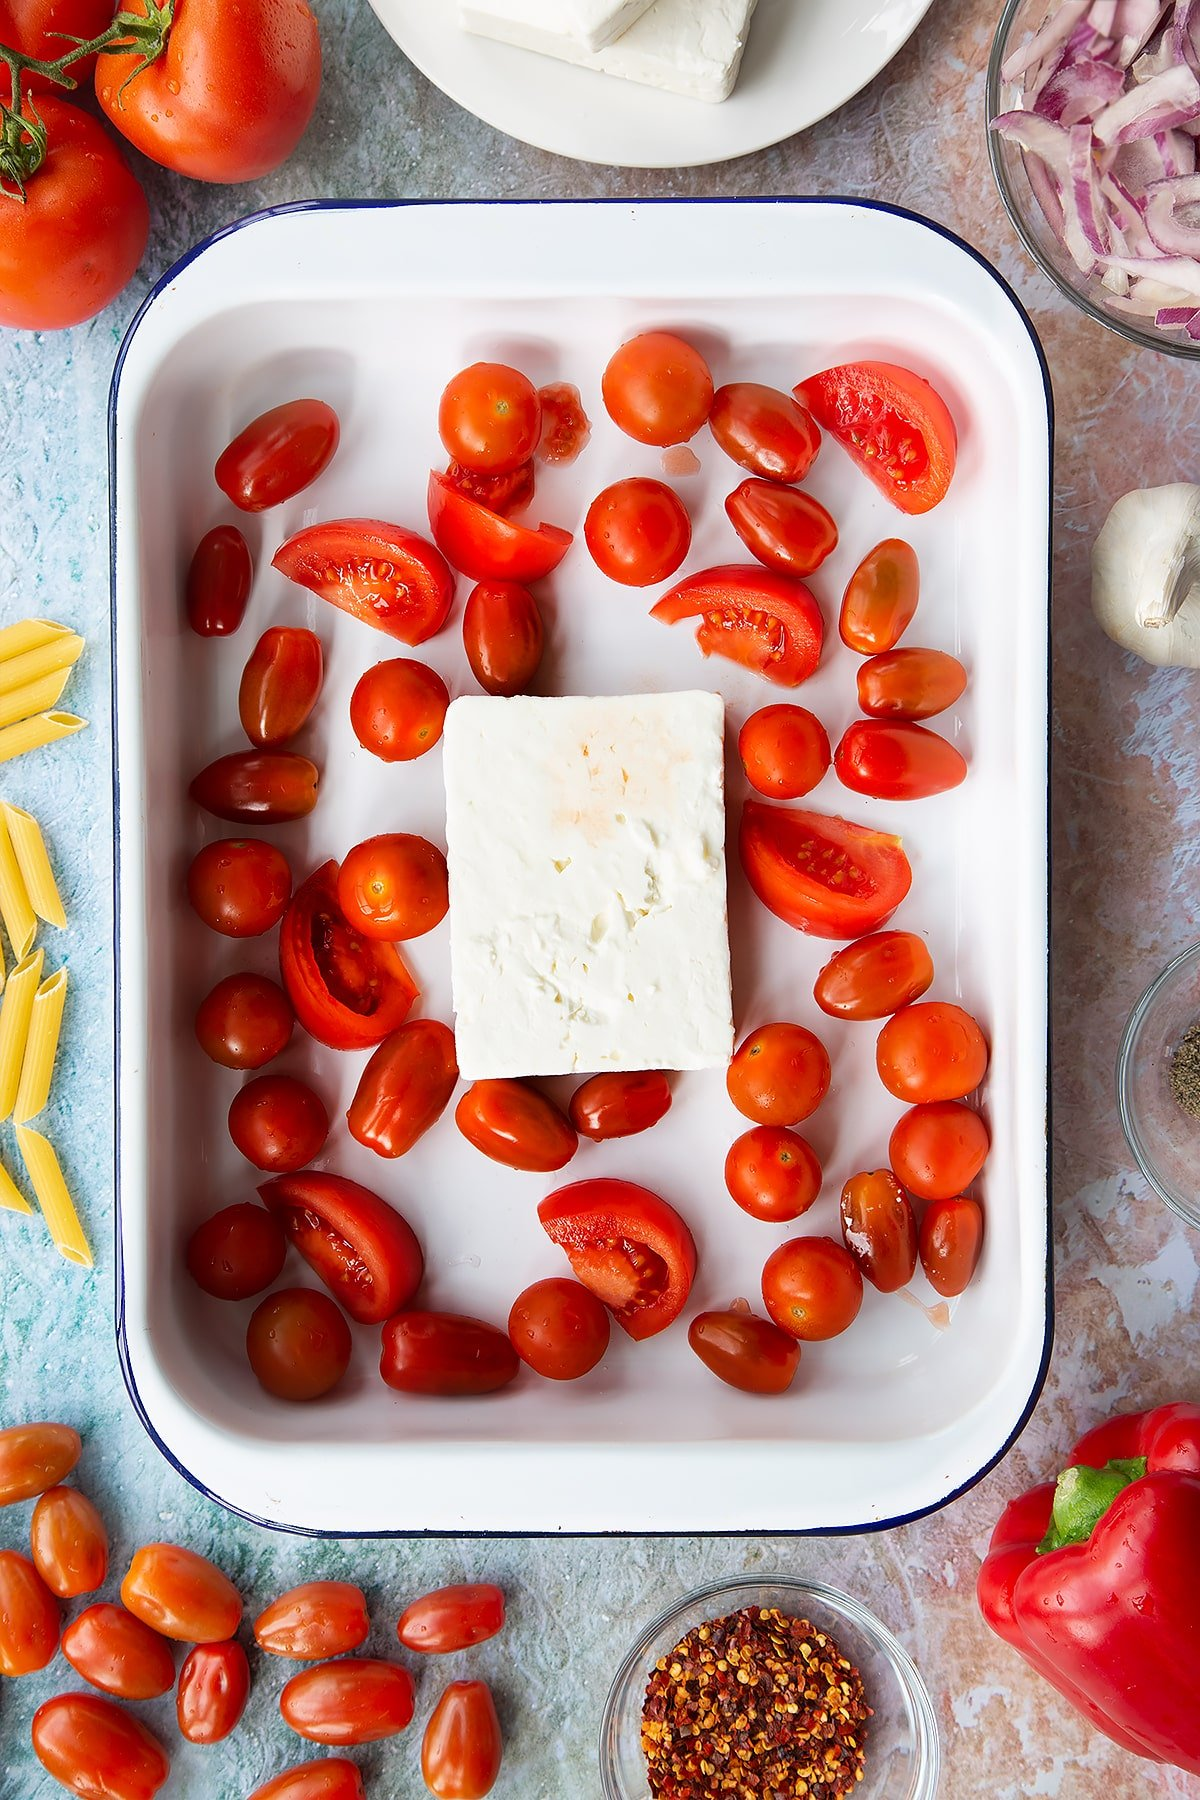 A block of feta surrounded by tomatoes in a large white roasting tray. Ingredients to make baked feta pasta surround the tray.